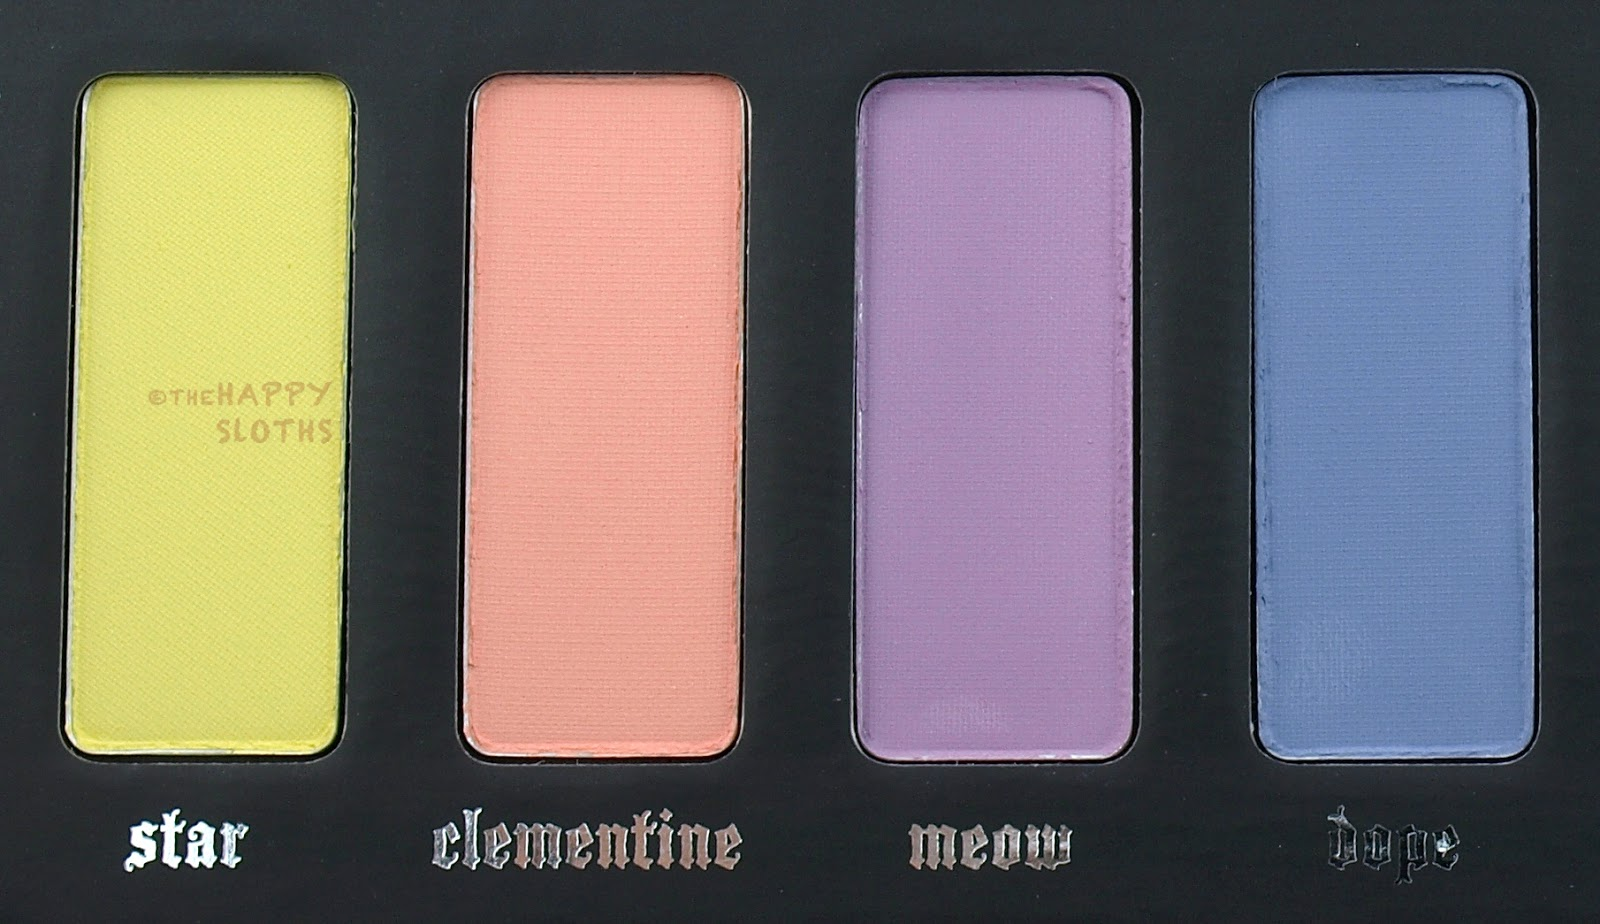 Kat Von D Pastel Goth Eyeshadow Palette: Review and Swatches